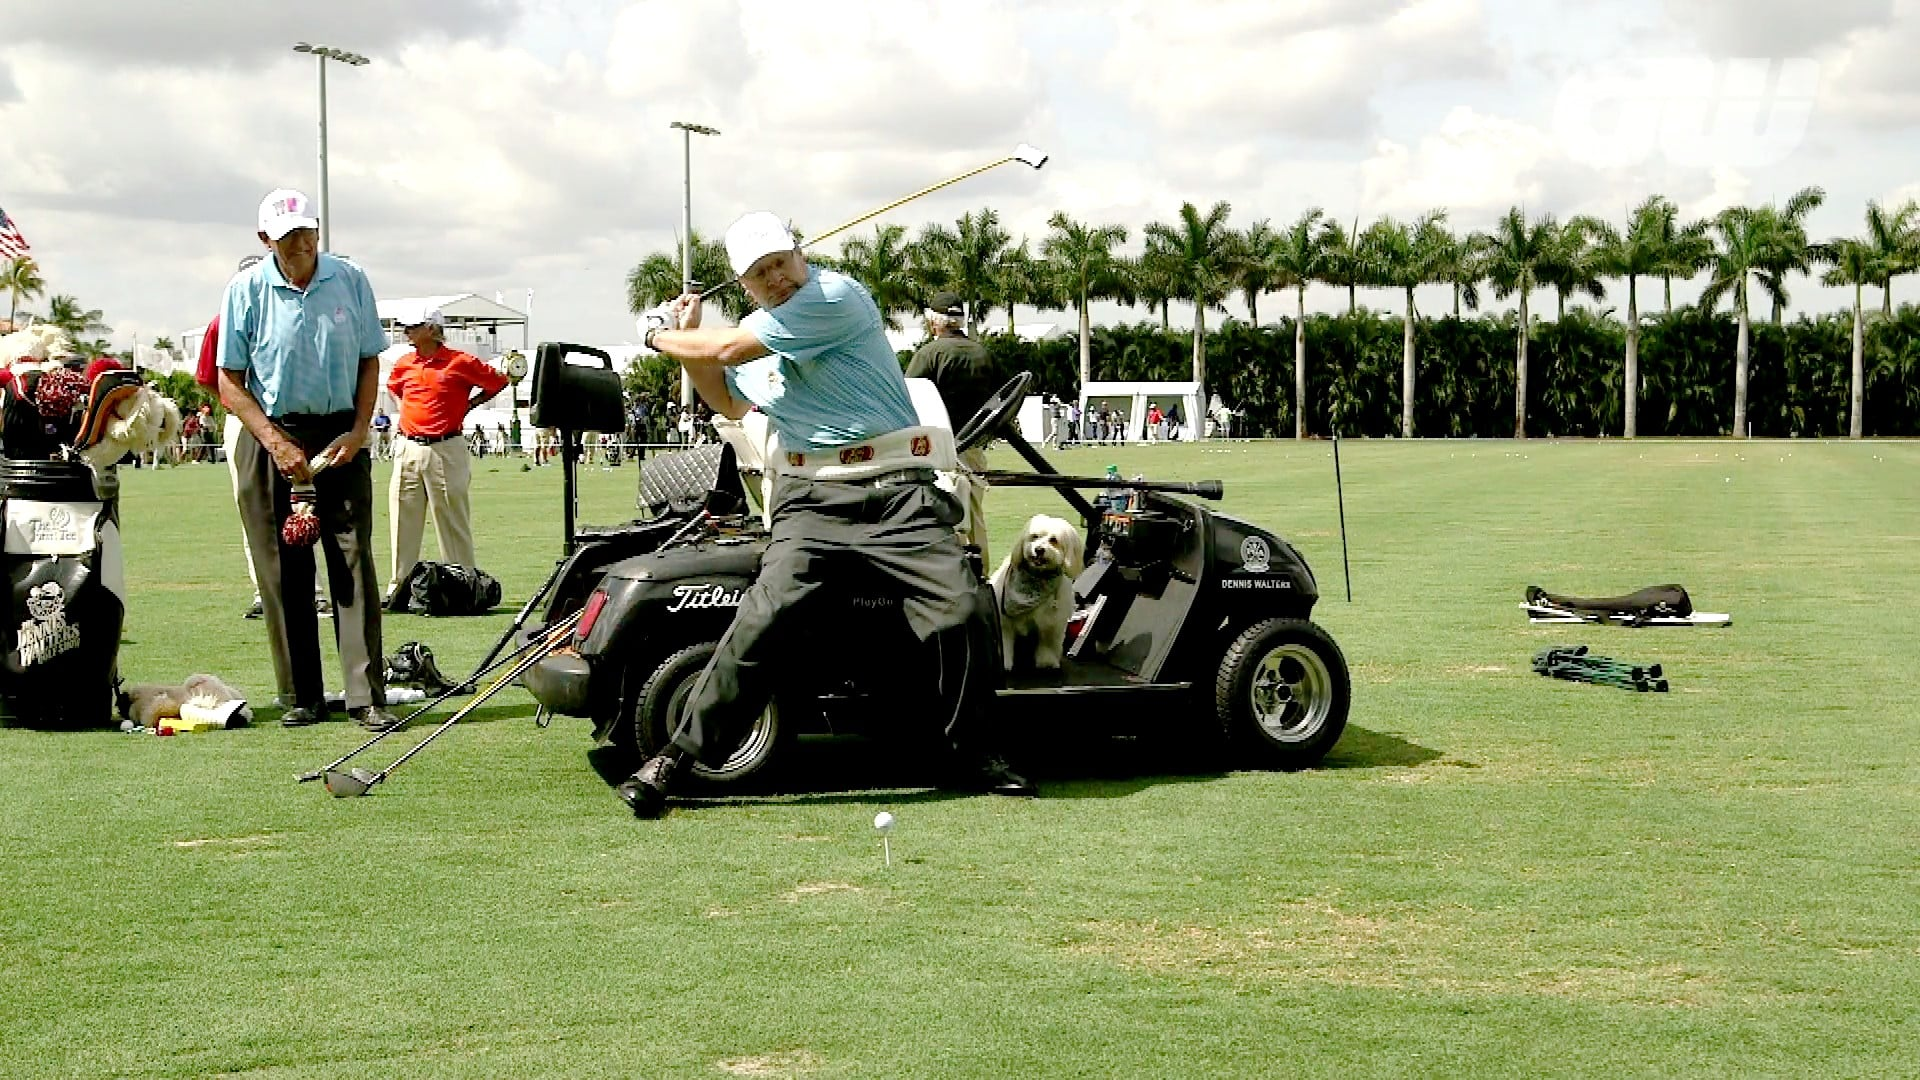 World's Only Paraplegic PGA Professional Inspires Keiser University COG Students